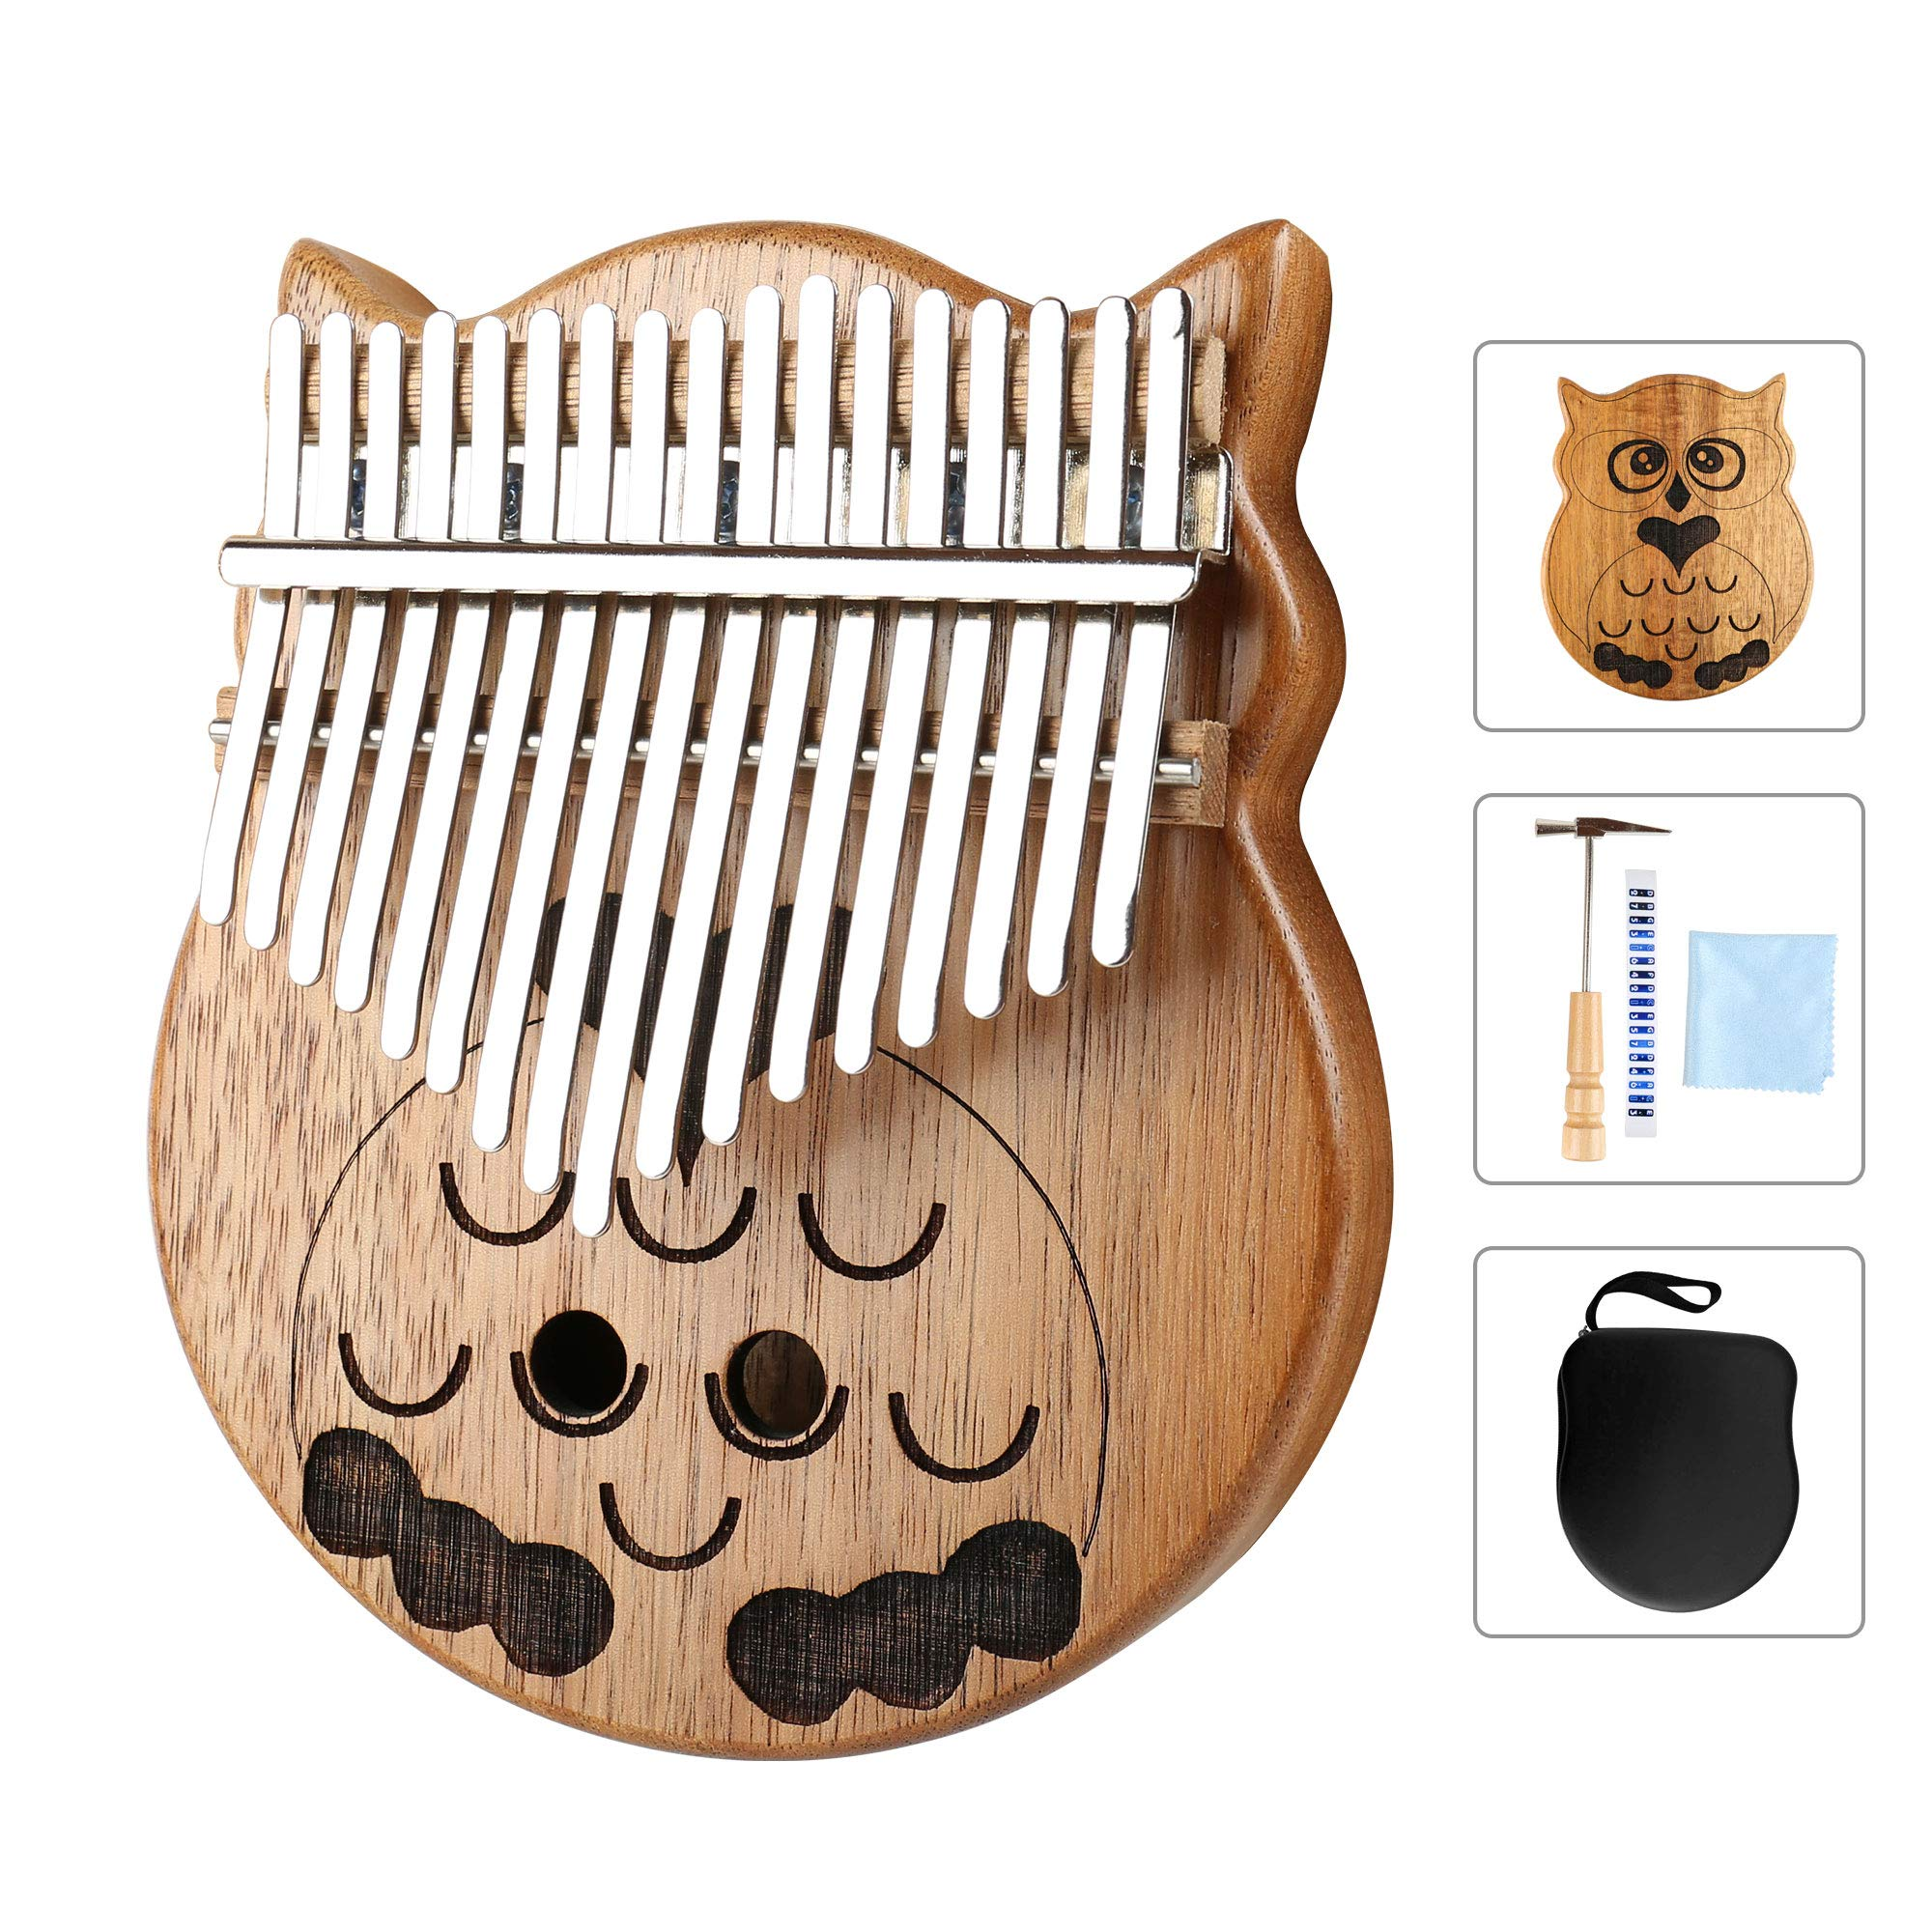 Owl Kalimba Thumb Piano 17 Keys Thumb Instrument with Number Sticker, Tuning Hammer, Protective Box and Cleanning Cloth by Caiyuangg